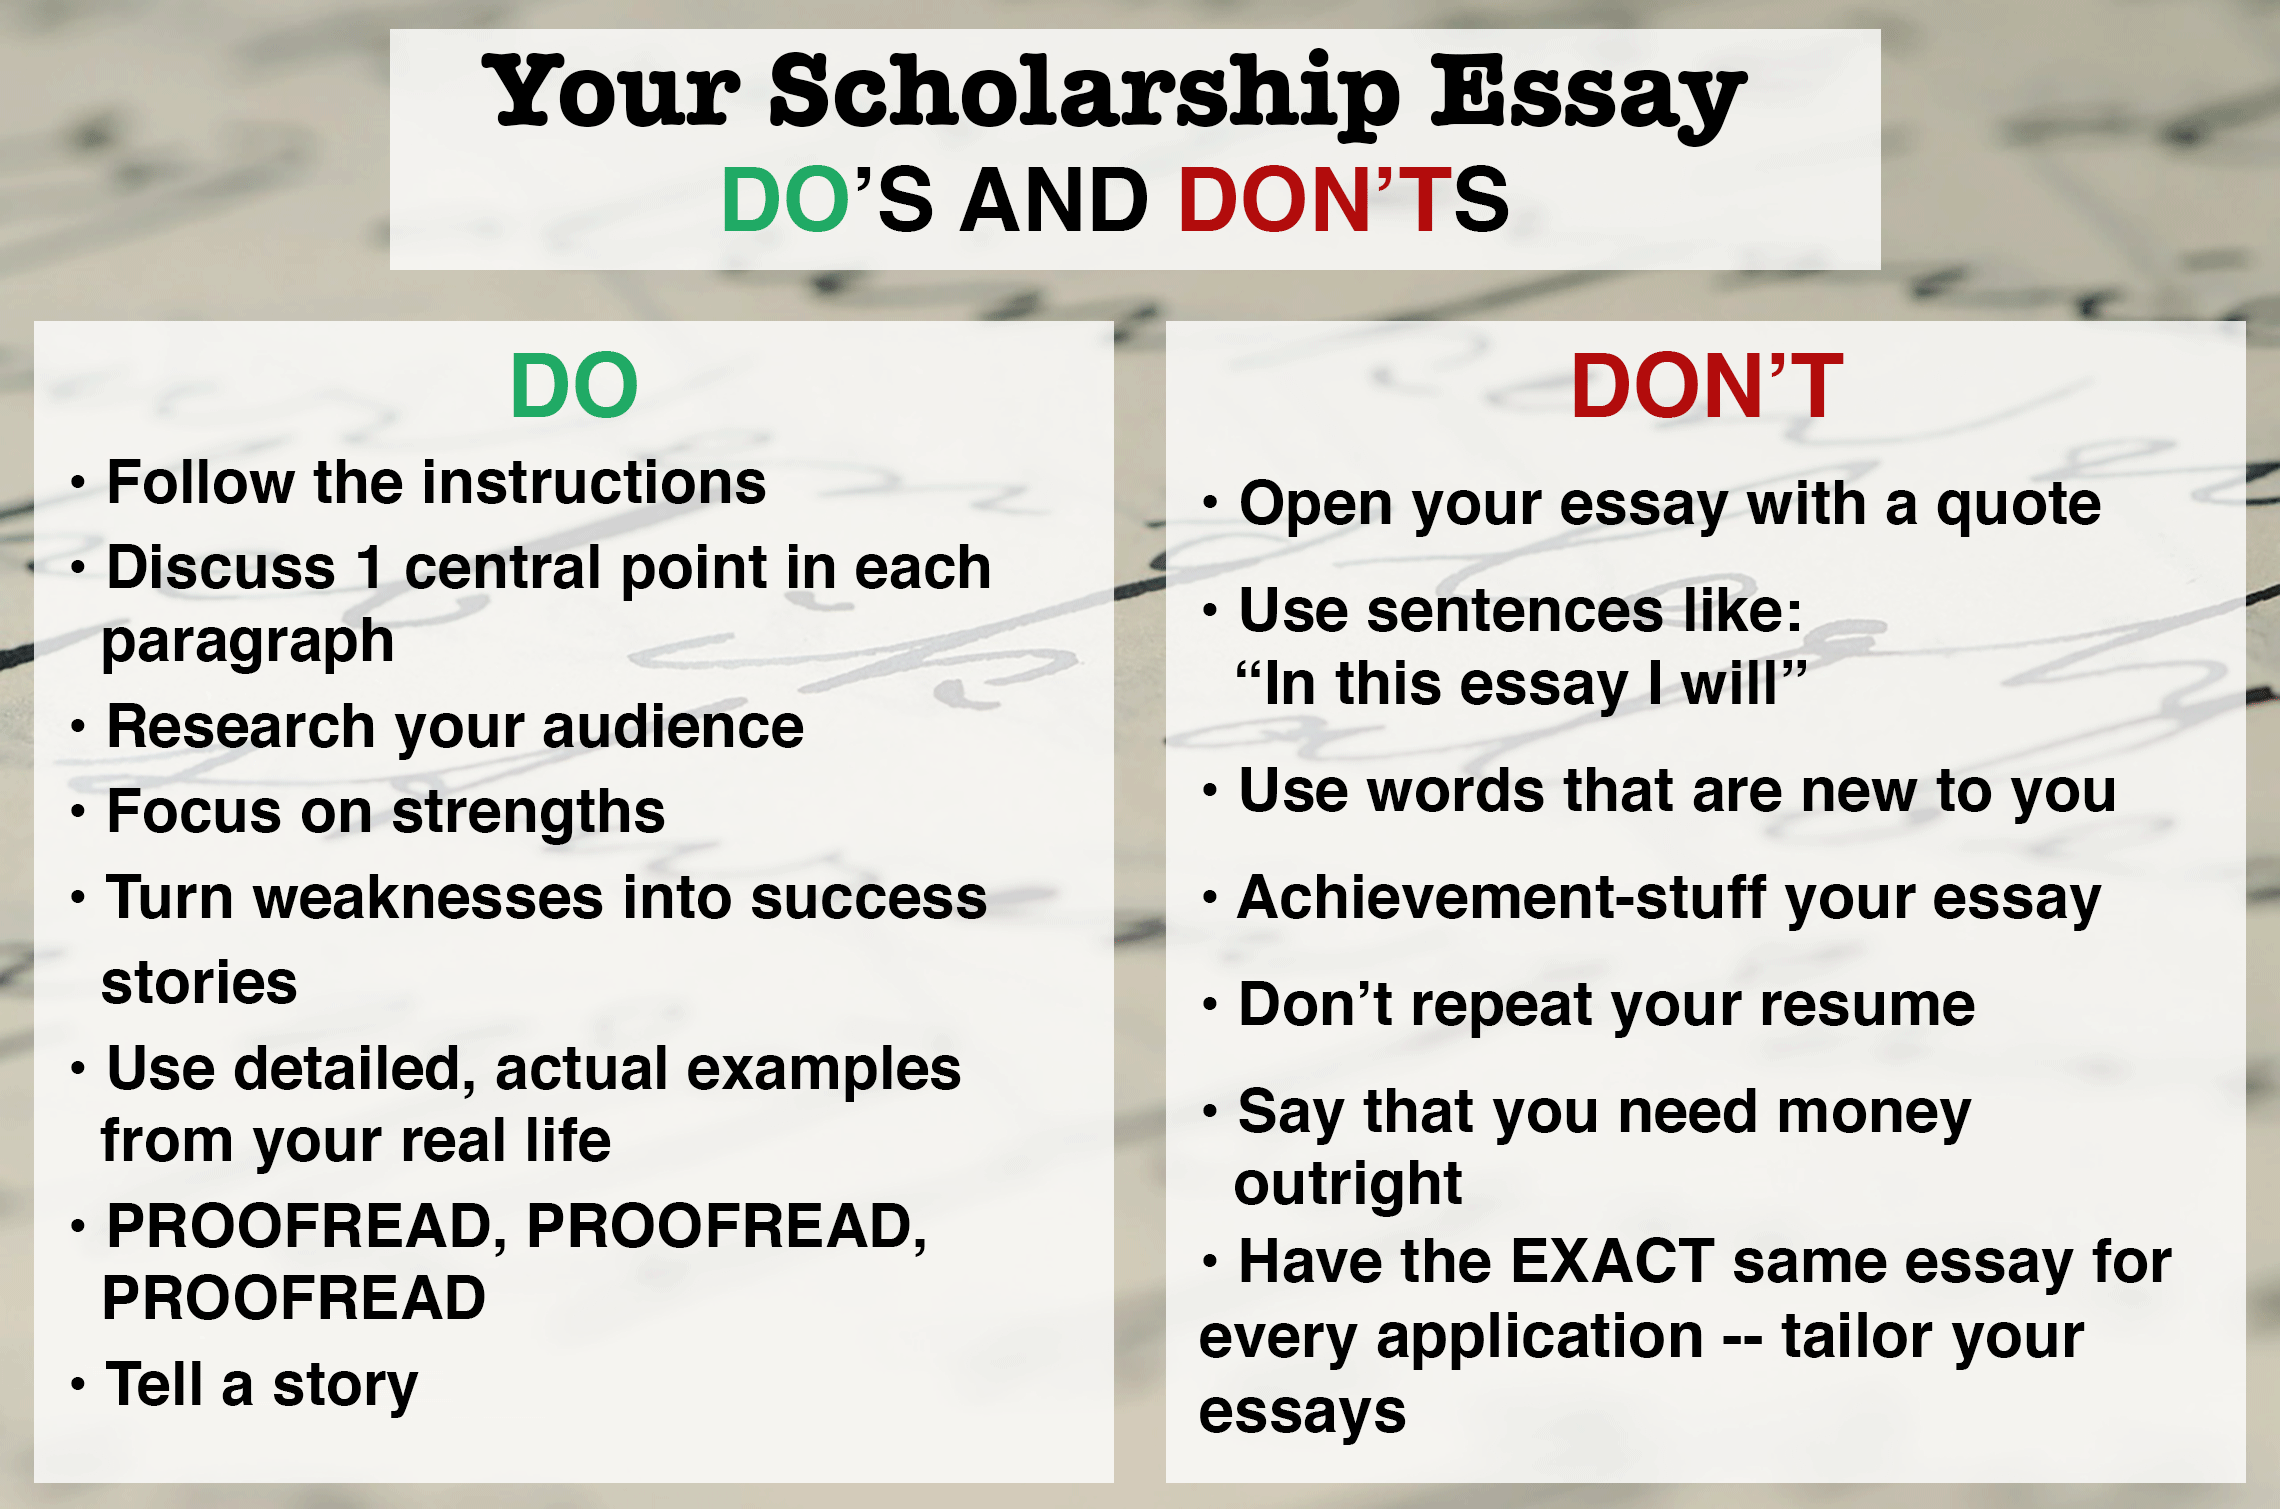 how to write a winning scholarship essay in 10 steps step 9 double check your essay